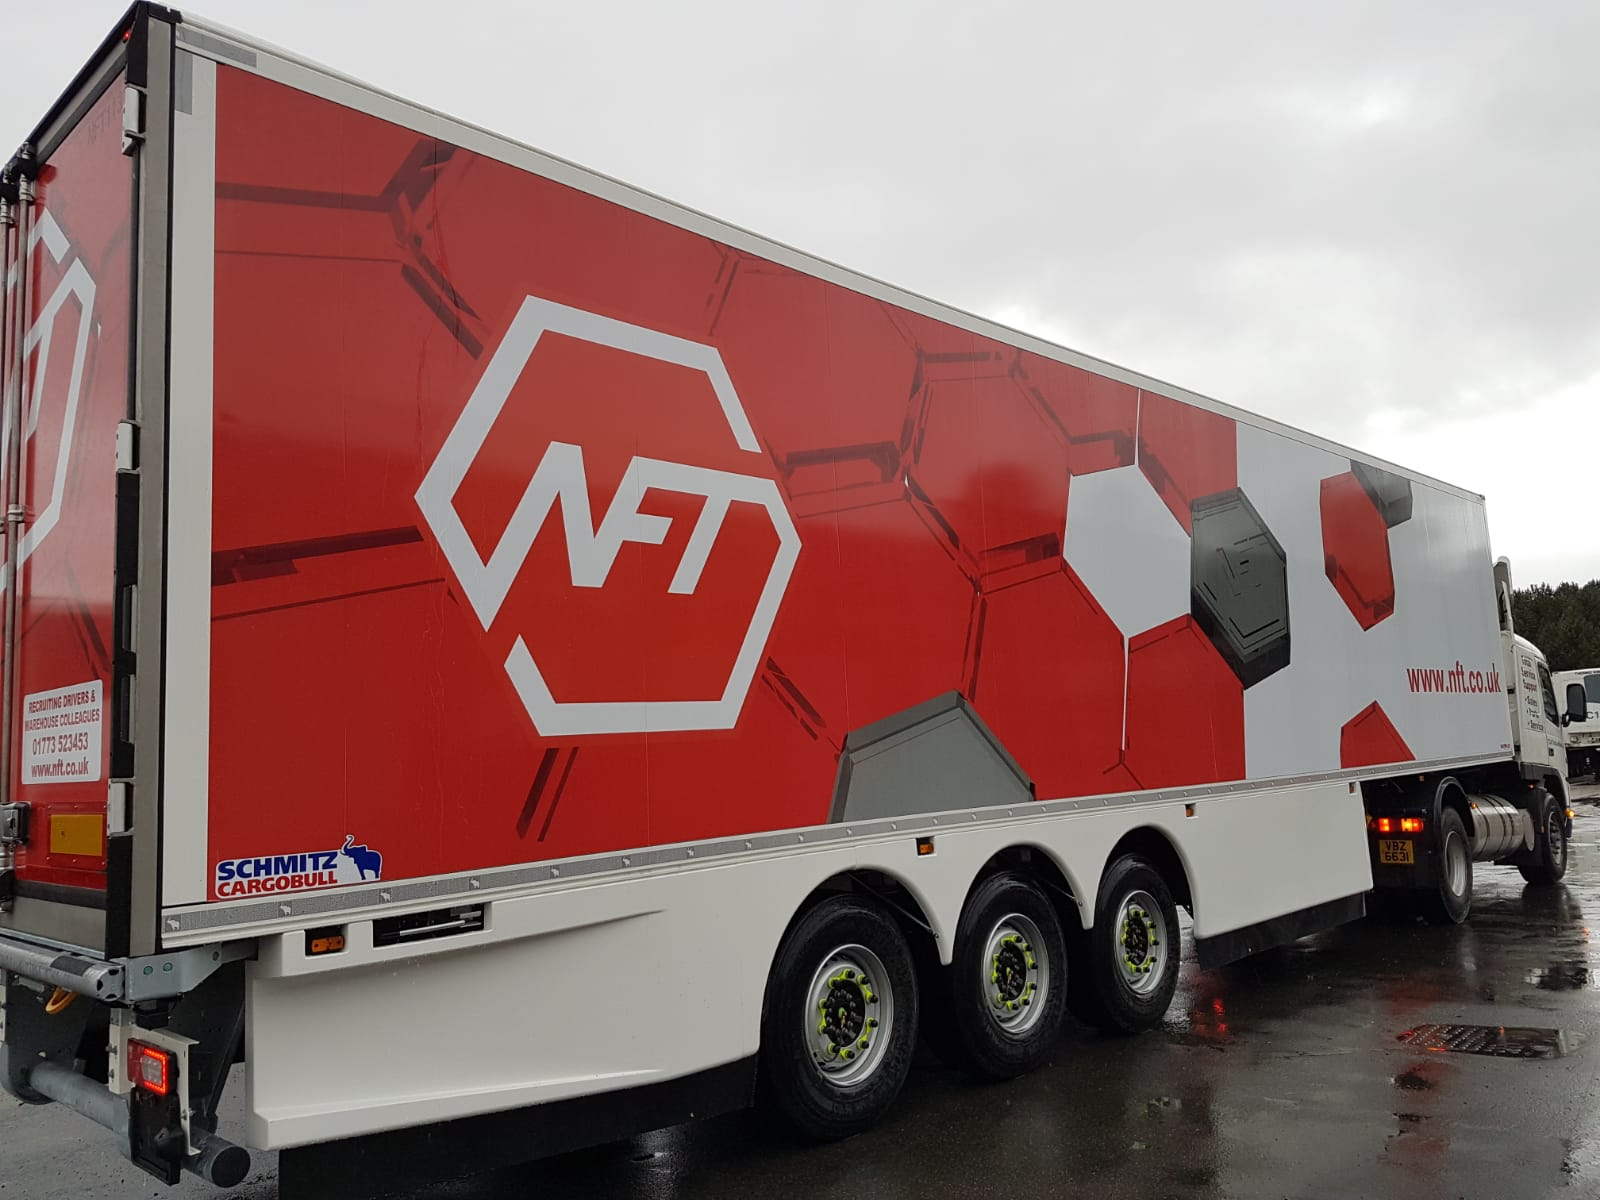 NFT Distribution equip their fleet with PSI